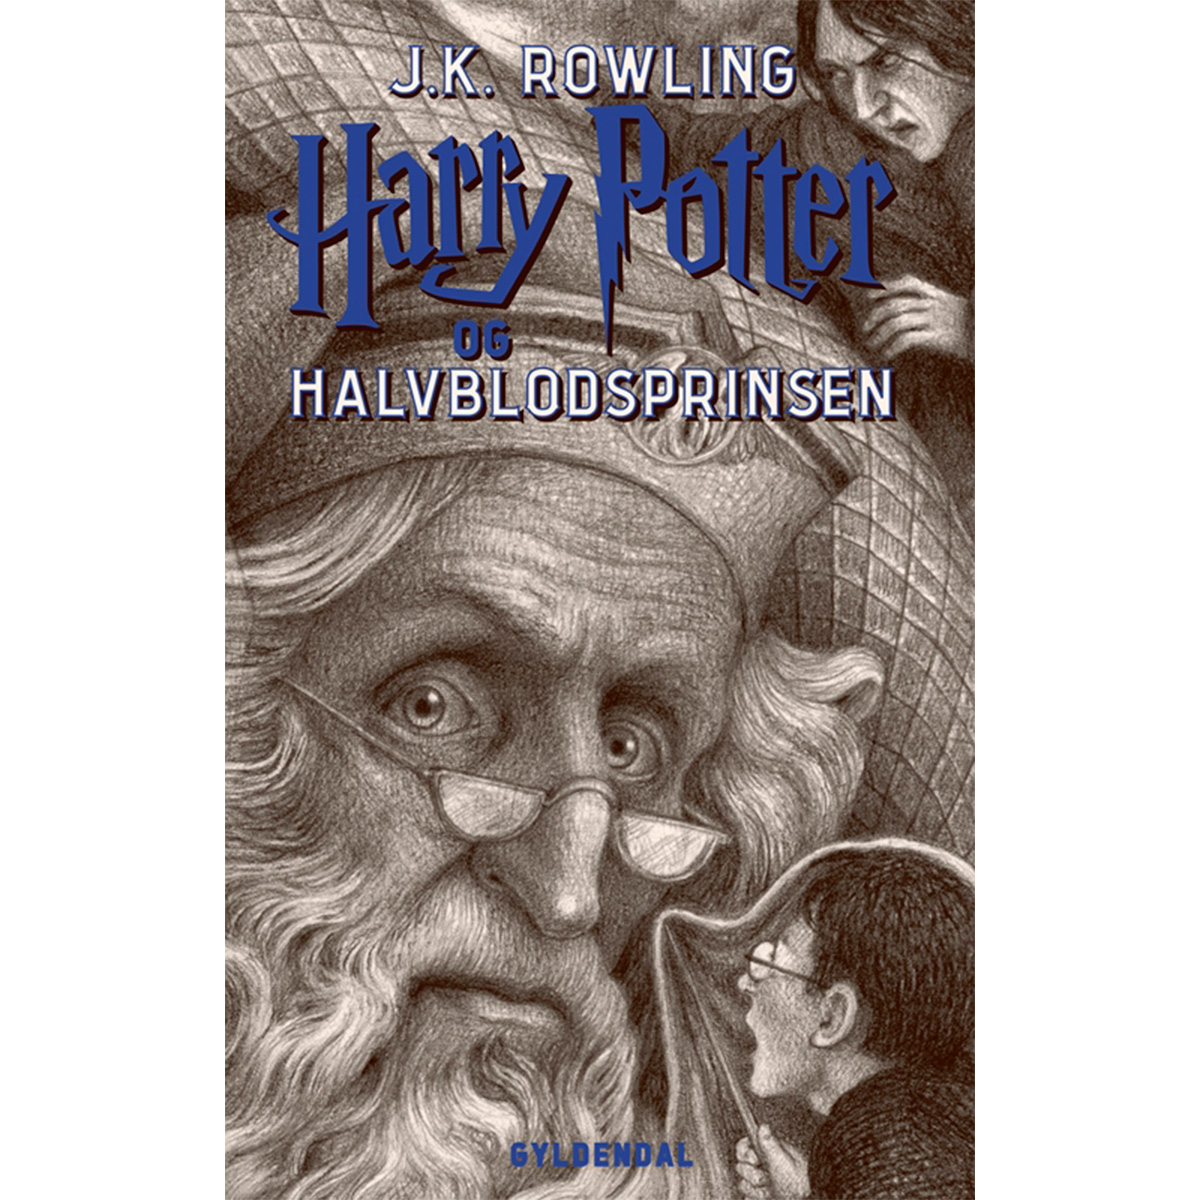 Harry Potter og Halvblodsprinsen - Harry Potter 6 - Hæftet